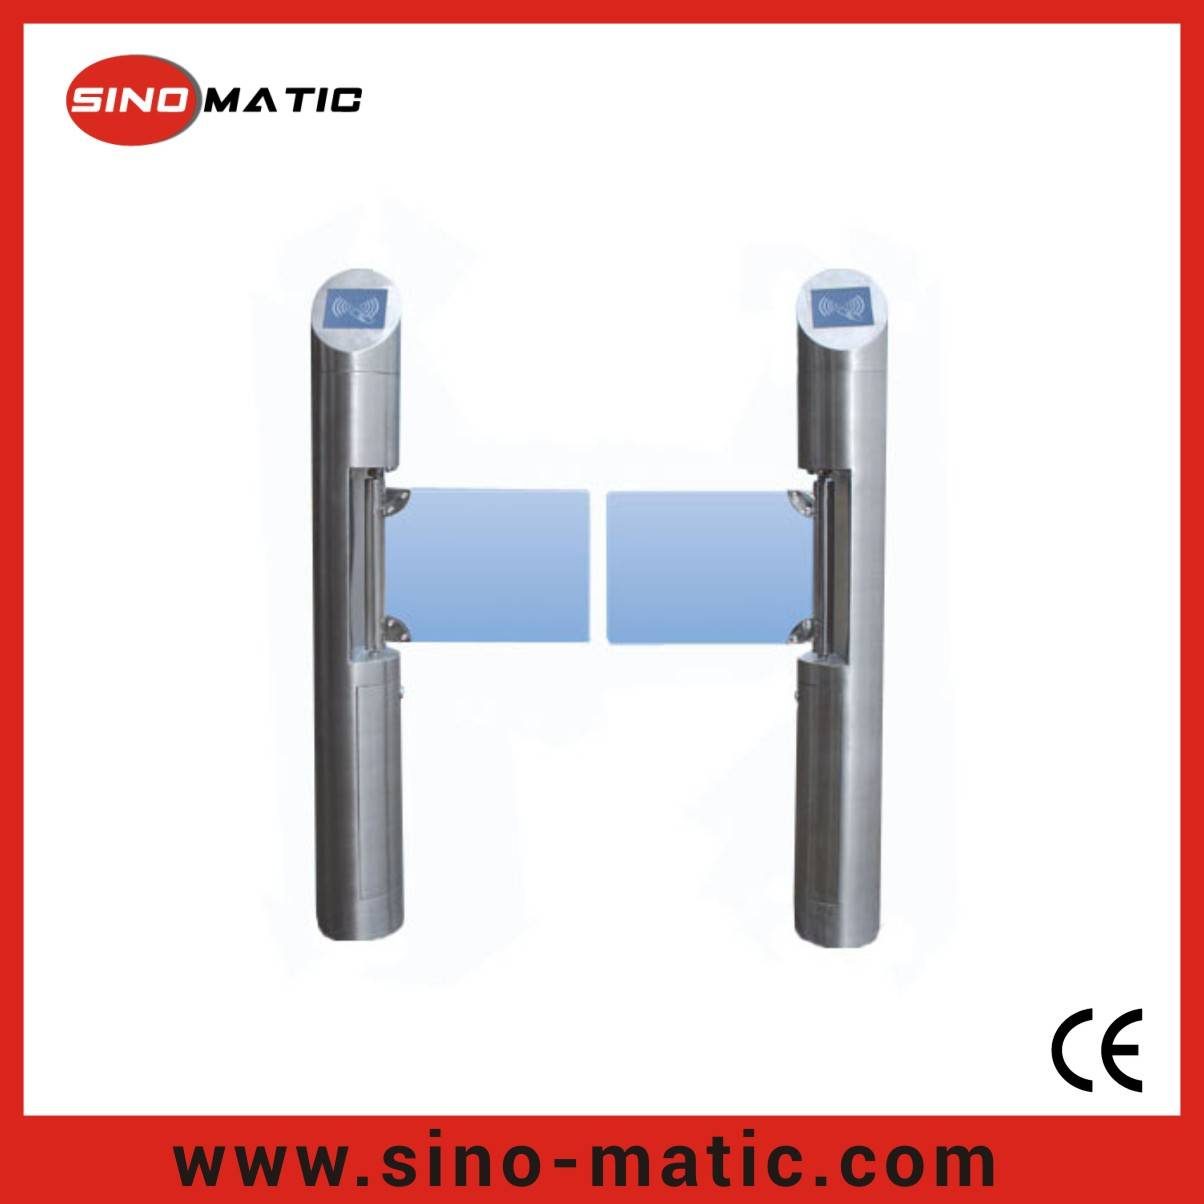 OEM/ODM clear crystal PVC arm swing gate barrier